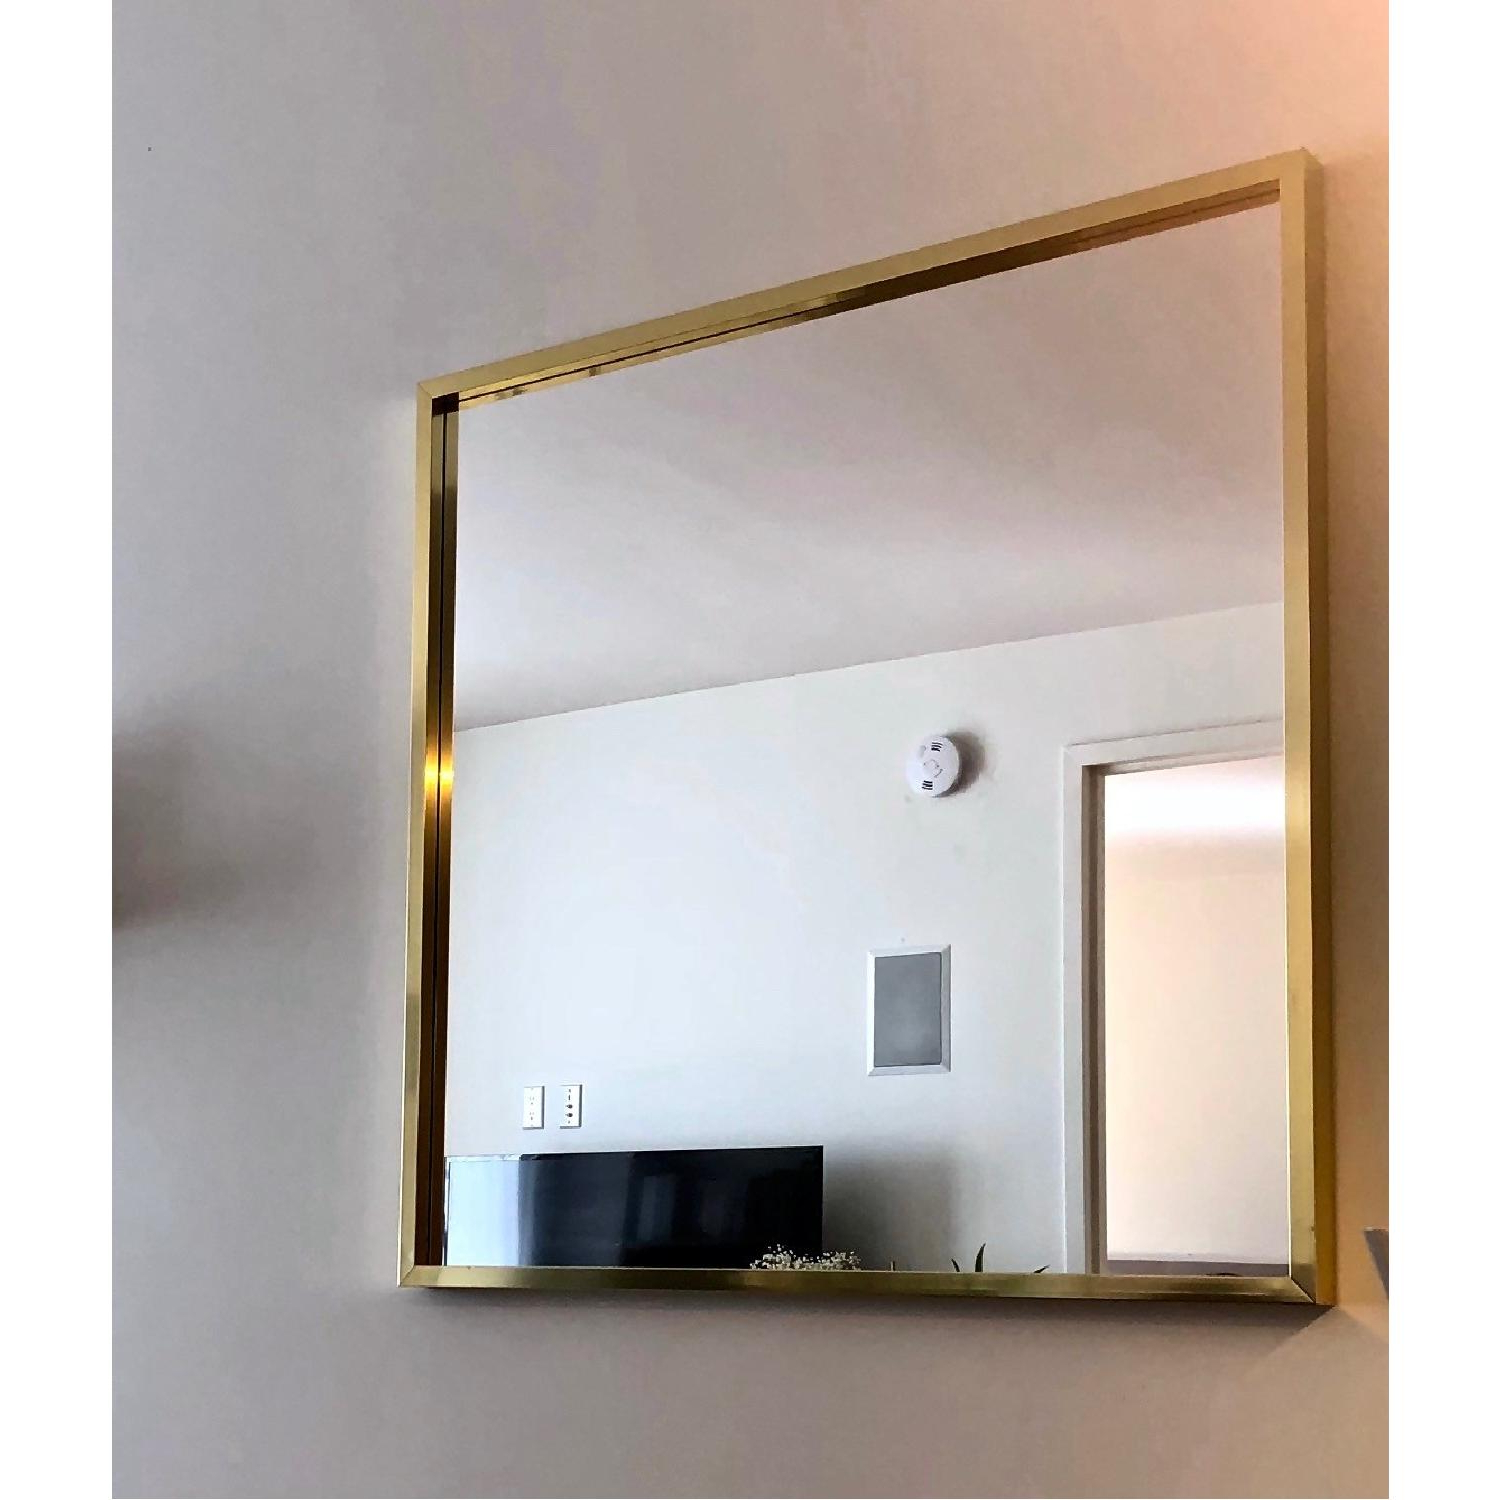 Cb Large Square Wall Mirror In Brass Oblong Art Home Depot With Regard To Preferred Large Square Wall Mirrors (View 6 of 20)